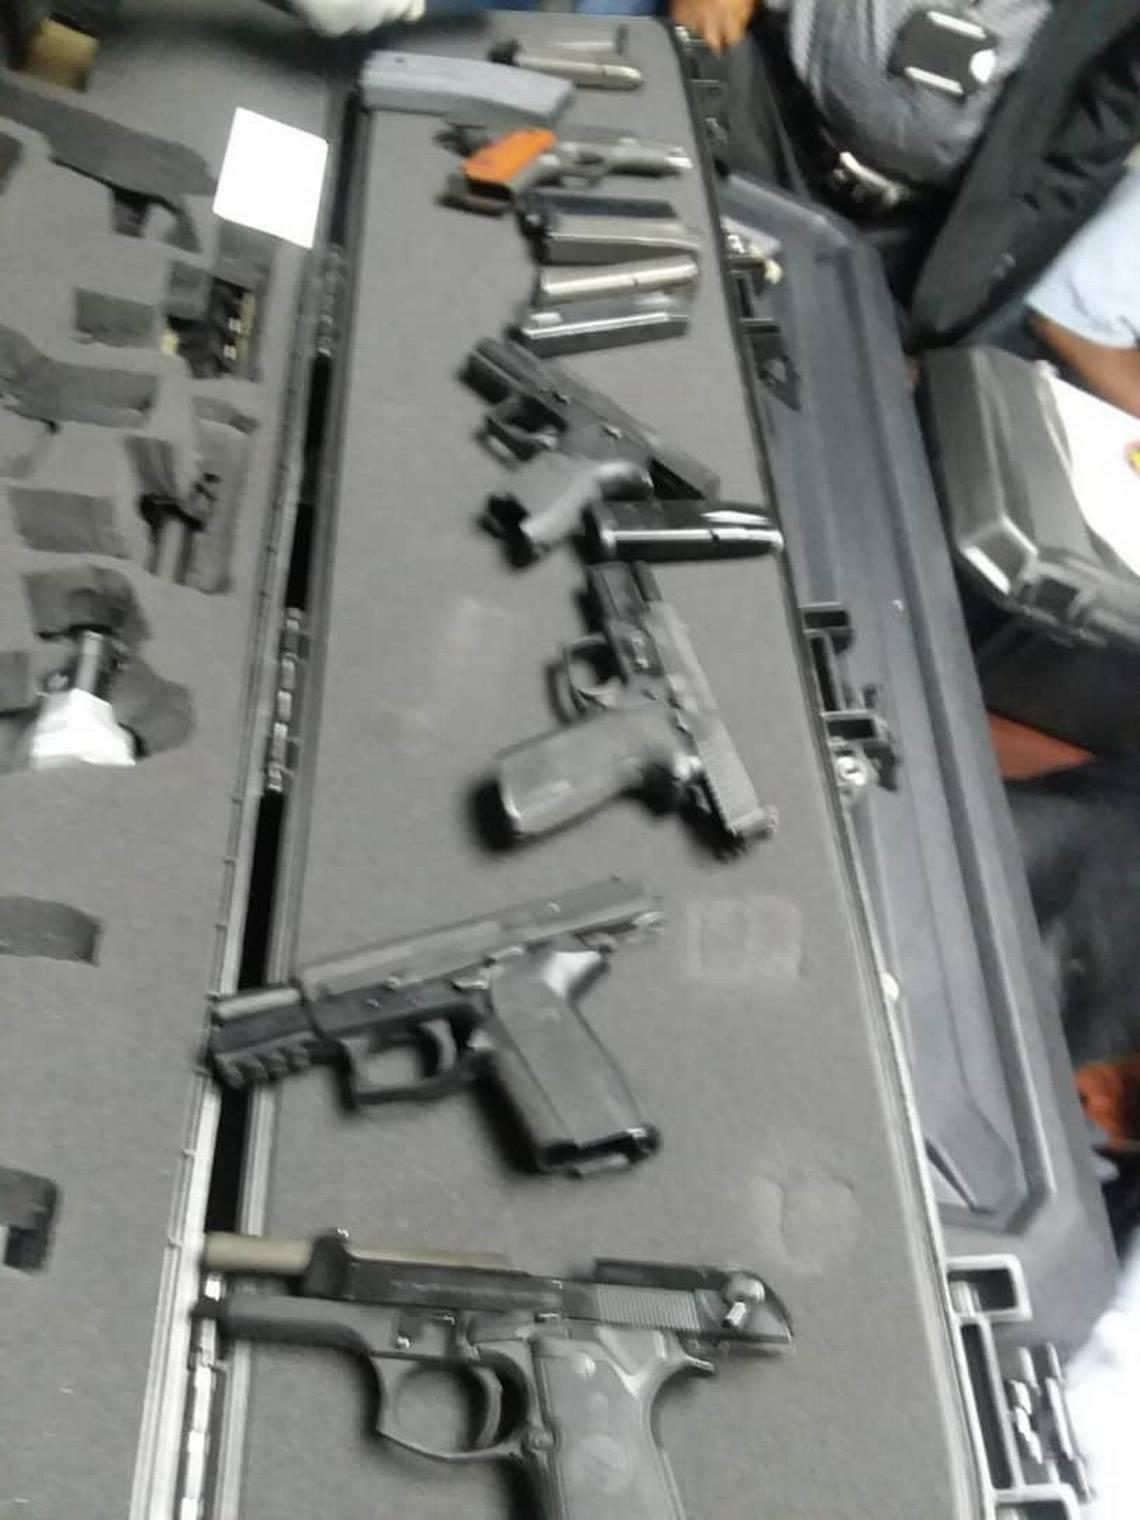 This photo of the weapons brought into Haiti by Jacques Yves Duroseau was circulated on social media after Duroseau's arrest in Port-au-Prince Tuesday after arriving aboard an American Airlines flight from Miami. Two police officials confirmed that the photos are from the incident.